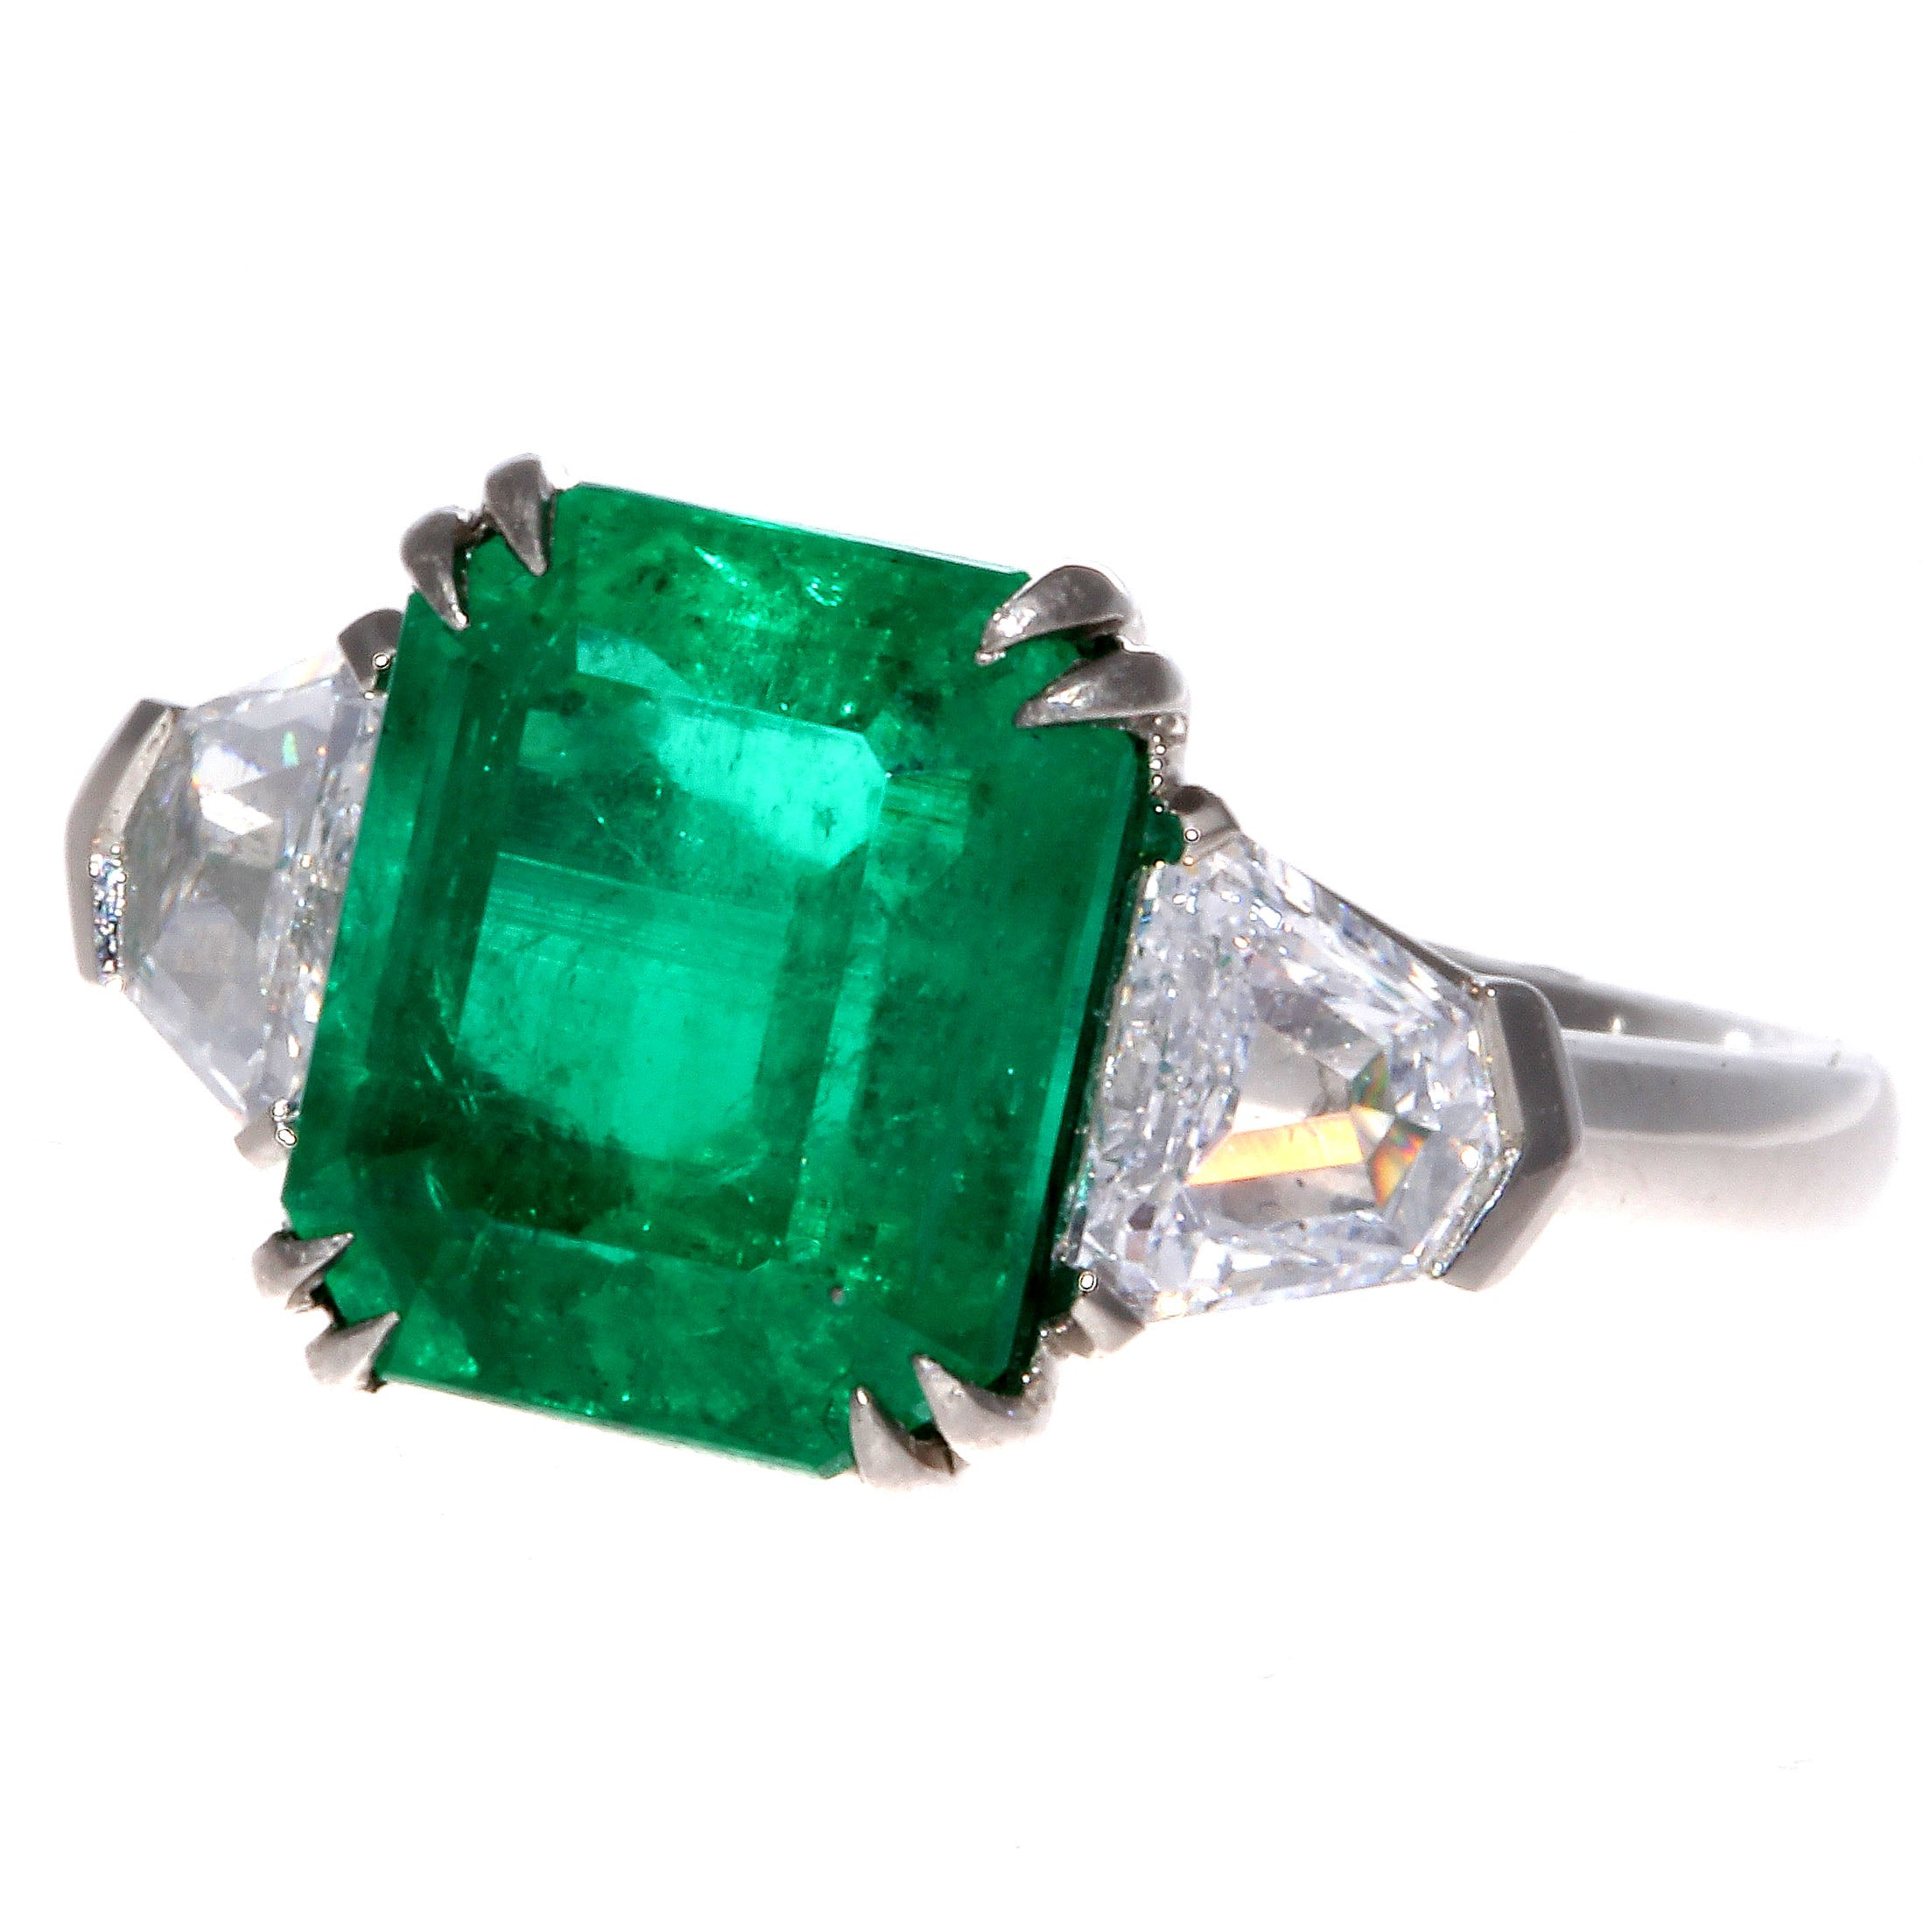 the emeral emerald rings including helen hay from pin of whitney estate a pair